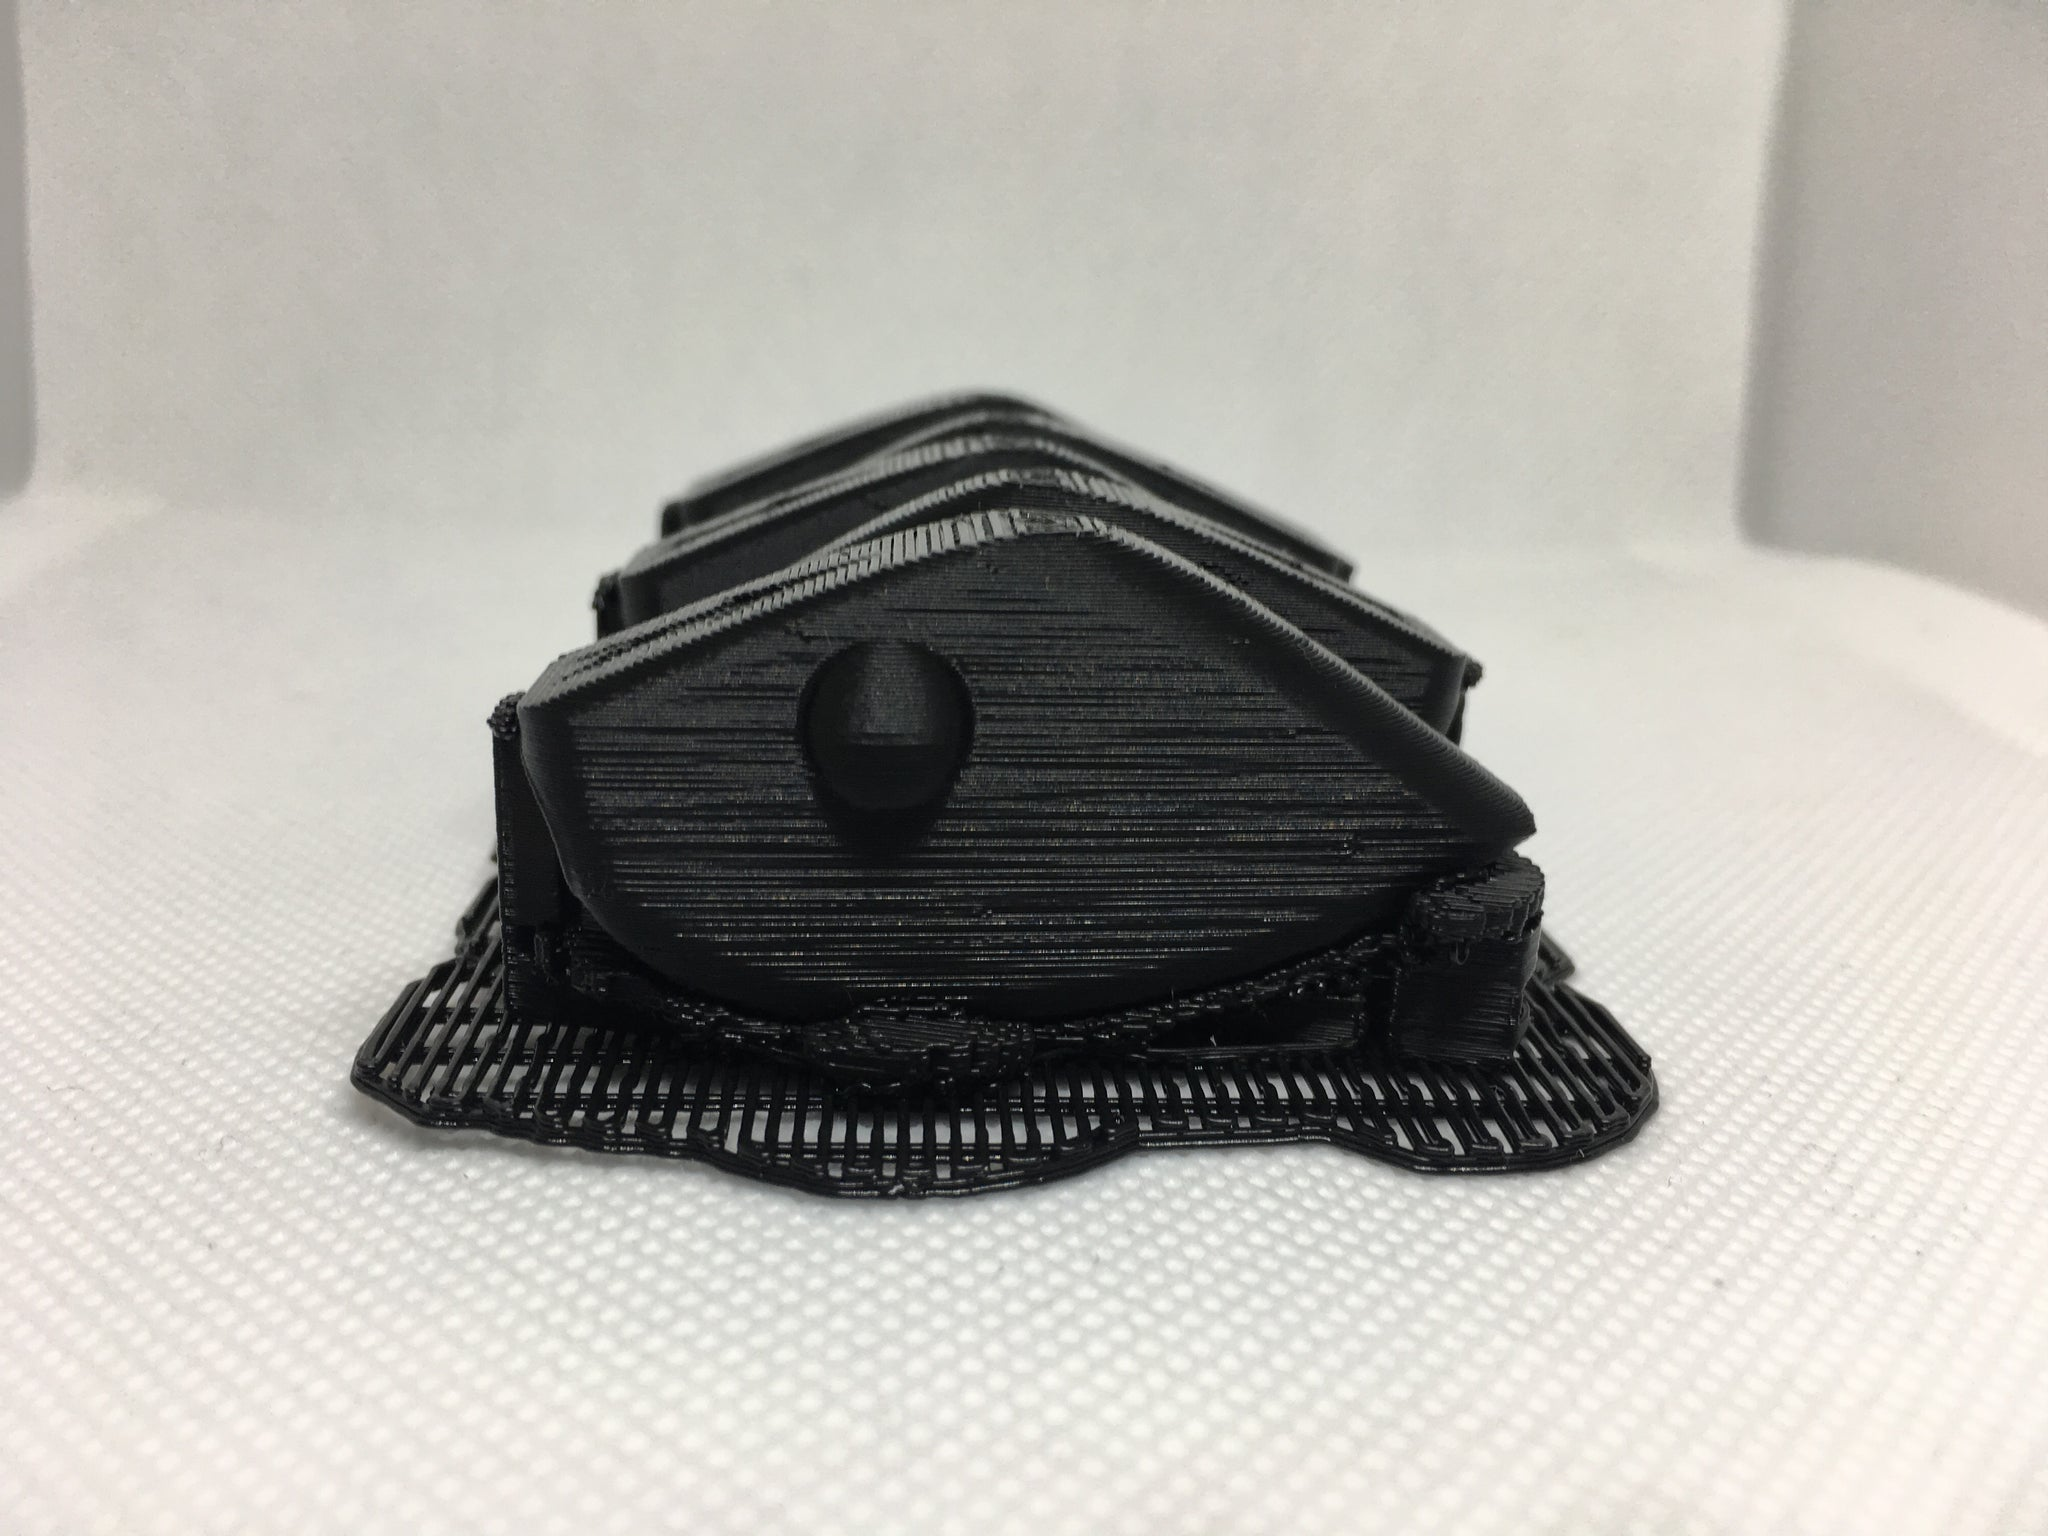 ADJUSTABLE WEIGHT LIPLESS CRANKBAIT BLANKS 3D PRINTED(BLACK)